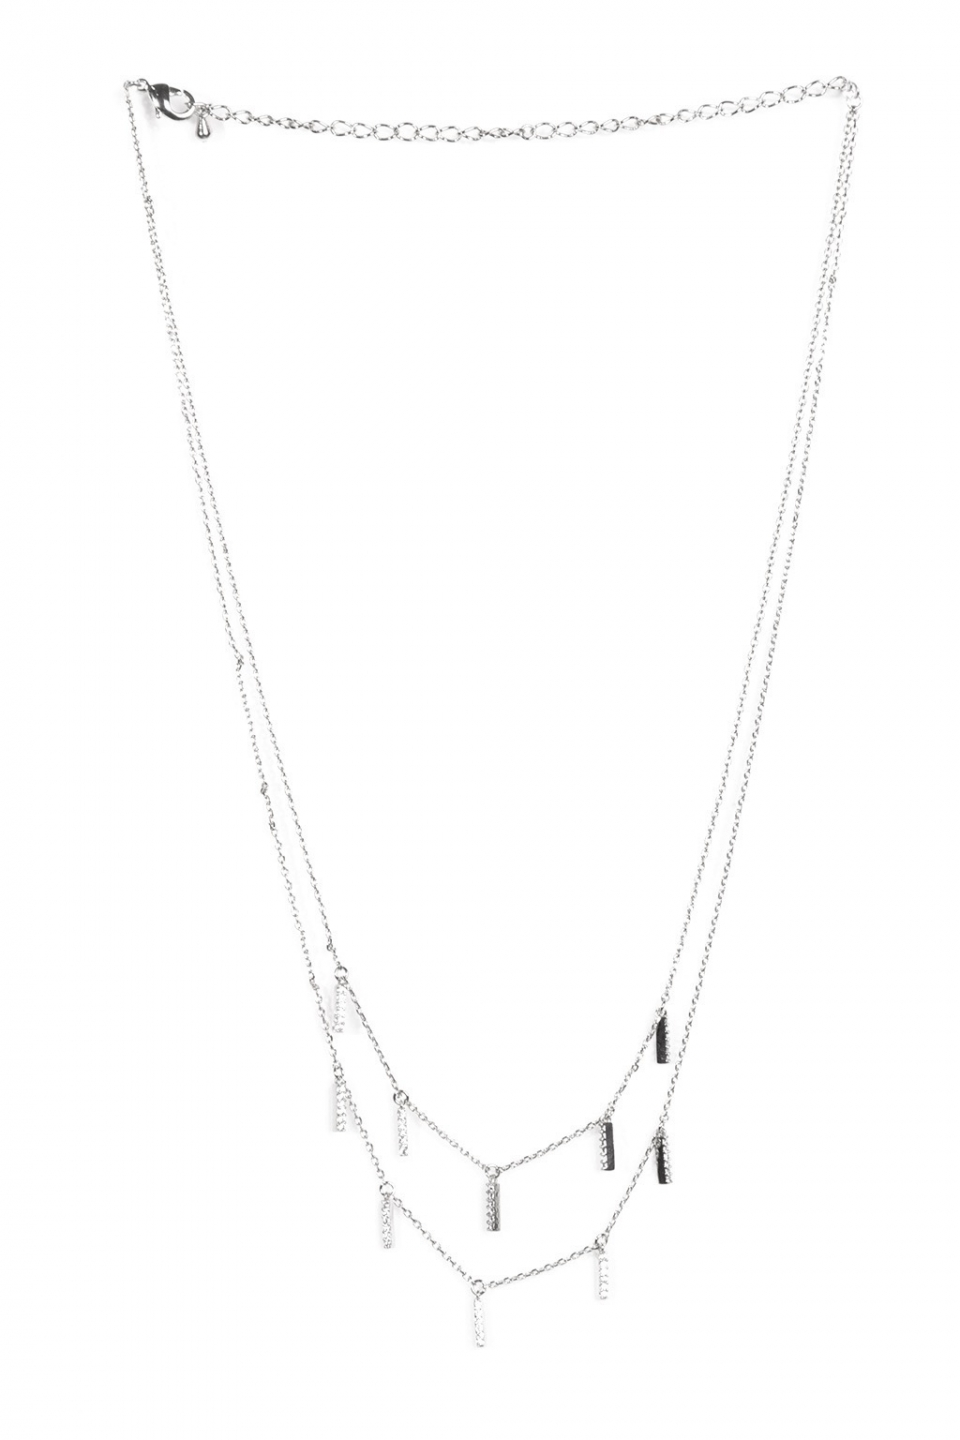 Bahti Silver Necklace